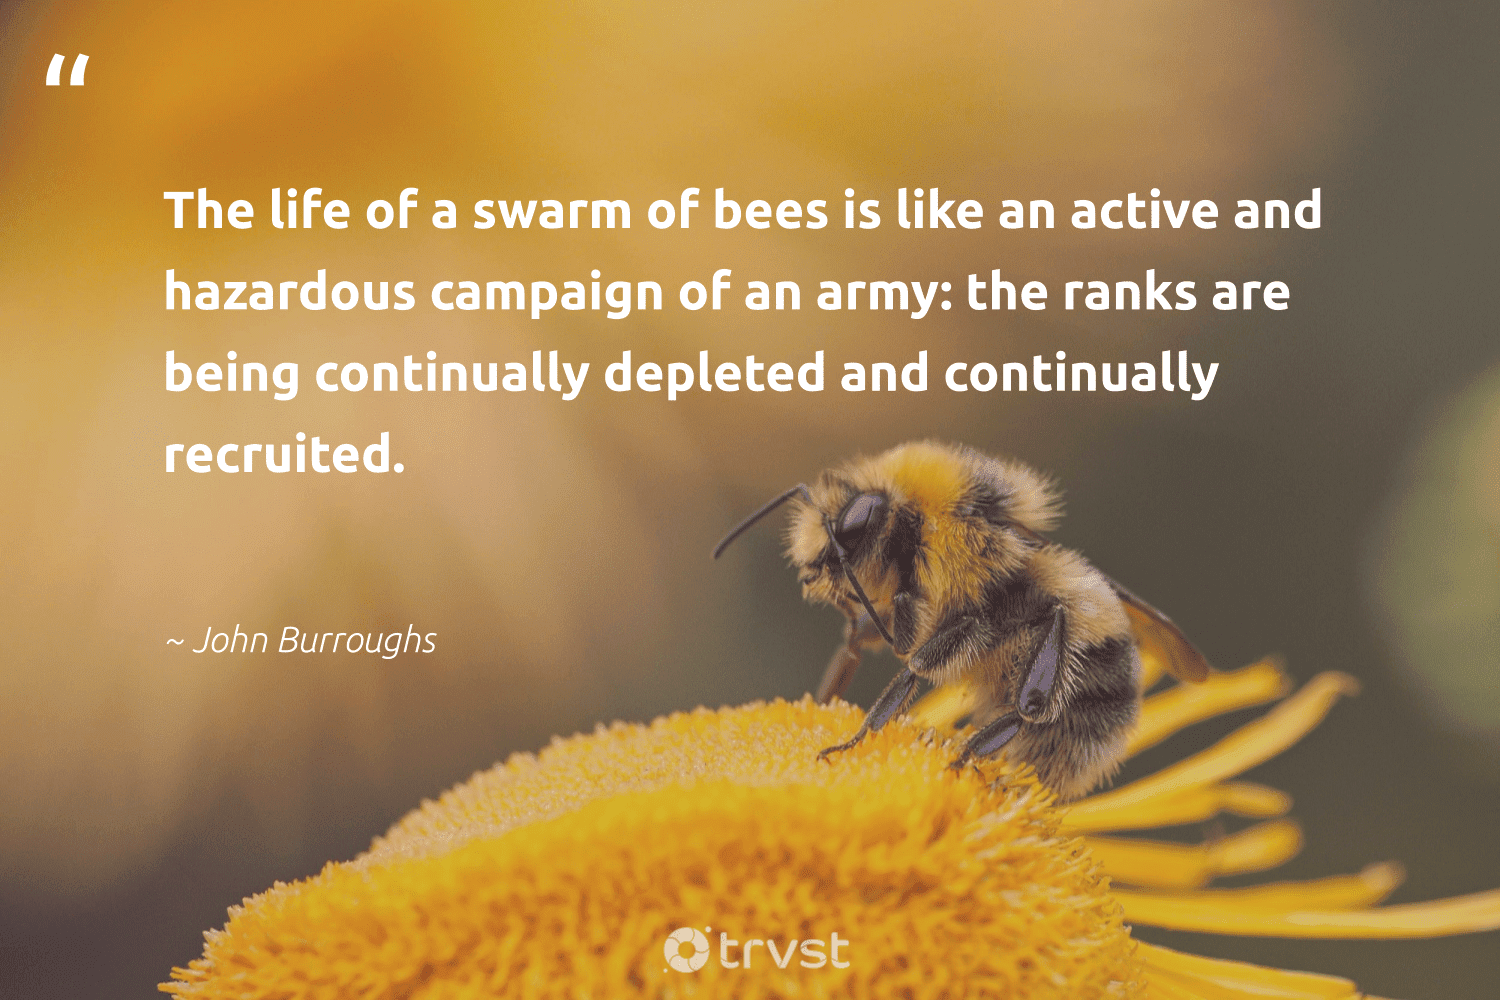 """""""The life of a swarm of bees is like an active and hazardous campaign of an army: the ranks are being continually depleted and continually recruited.""""  - John Burroughs #trvst #quotes #bees #honeybee #flowers #nature #planetearthfirst #beekeepers #bee #geology #ecoconscious #beekeeper"""